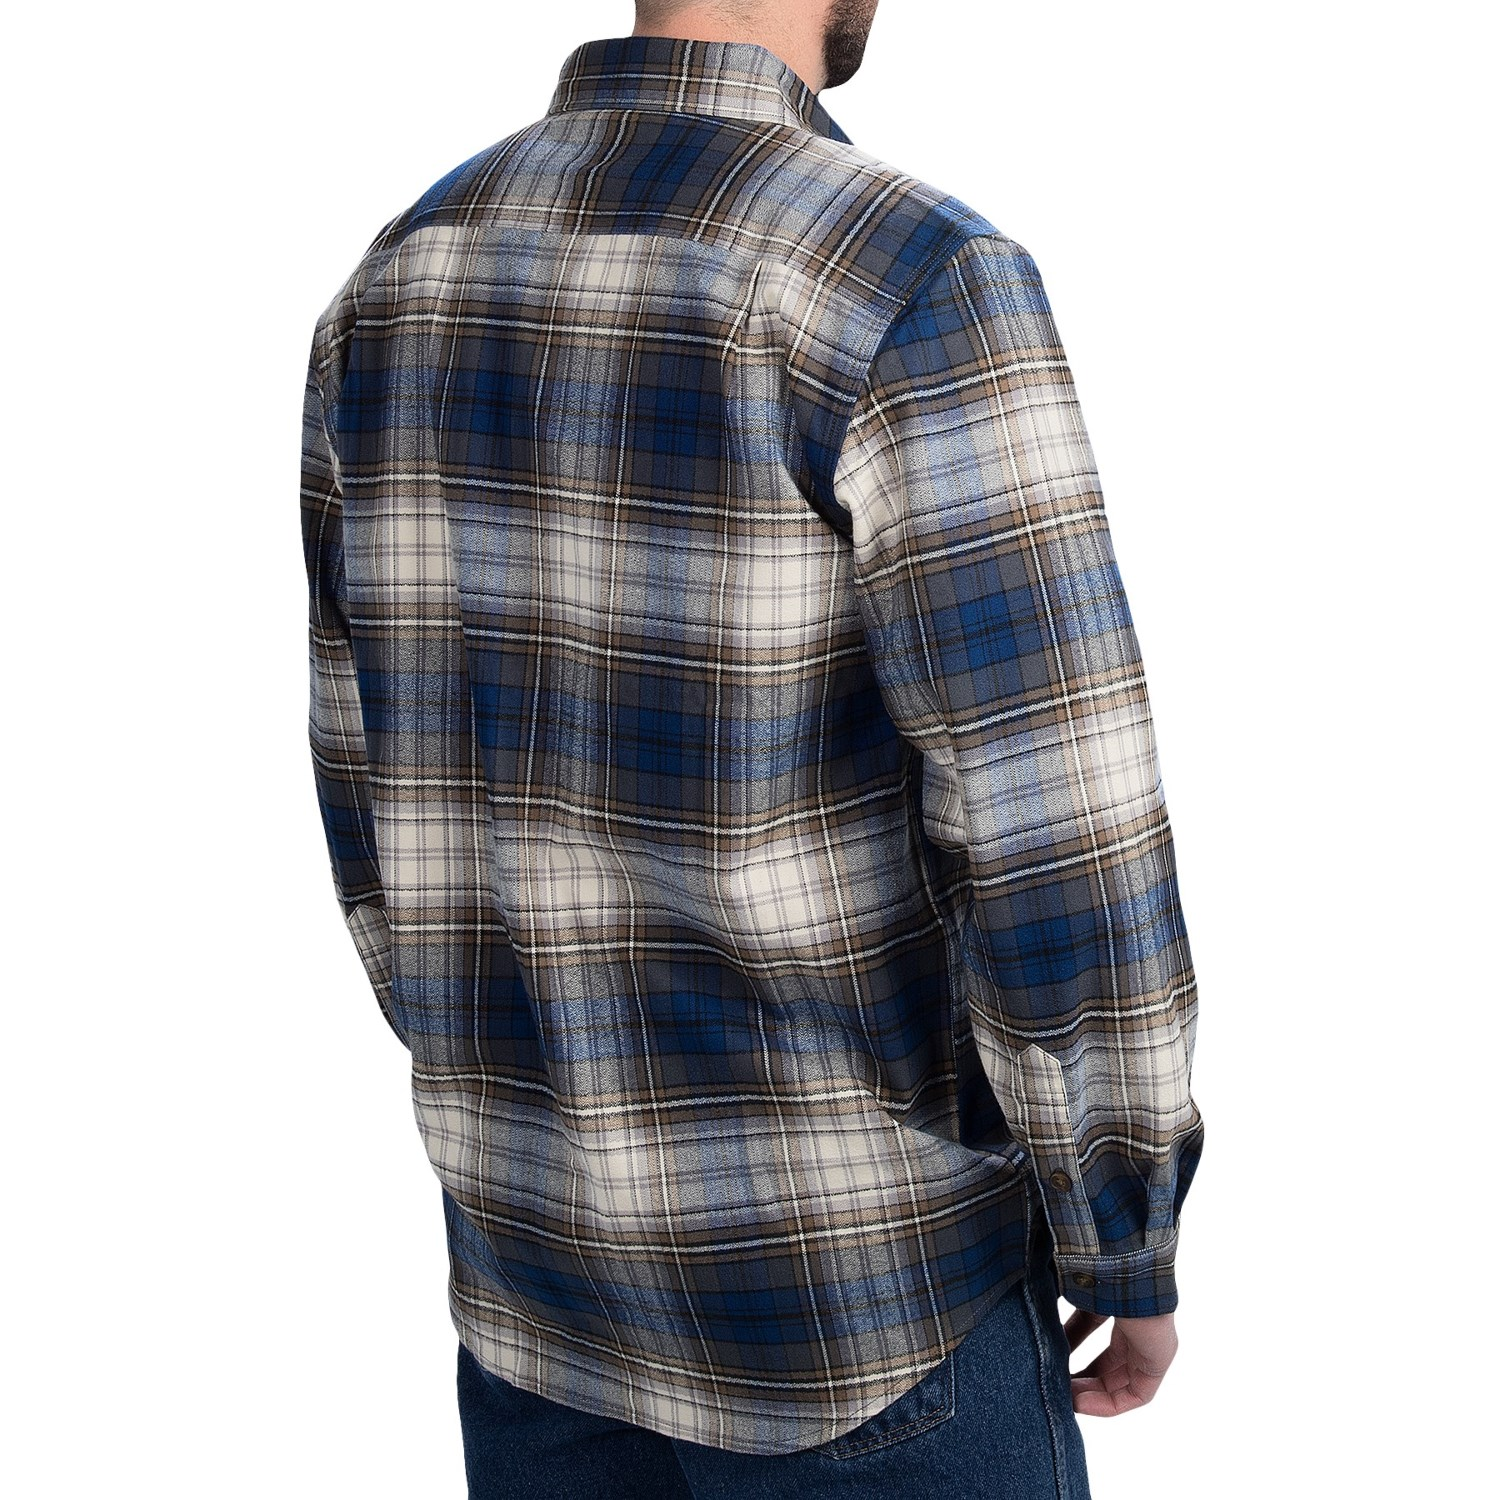 Mens Long Sleeve Carhartt Shirts